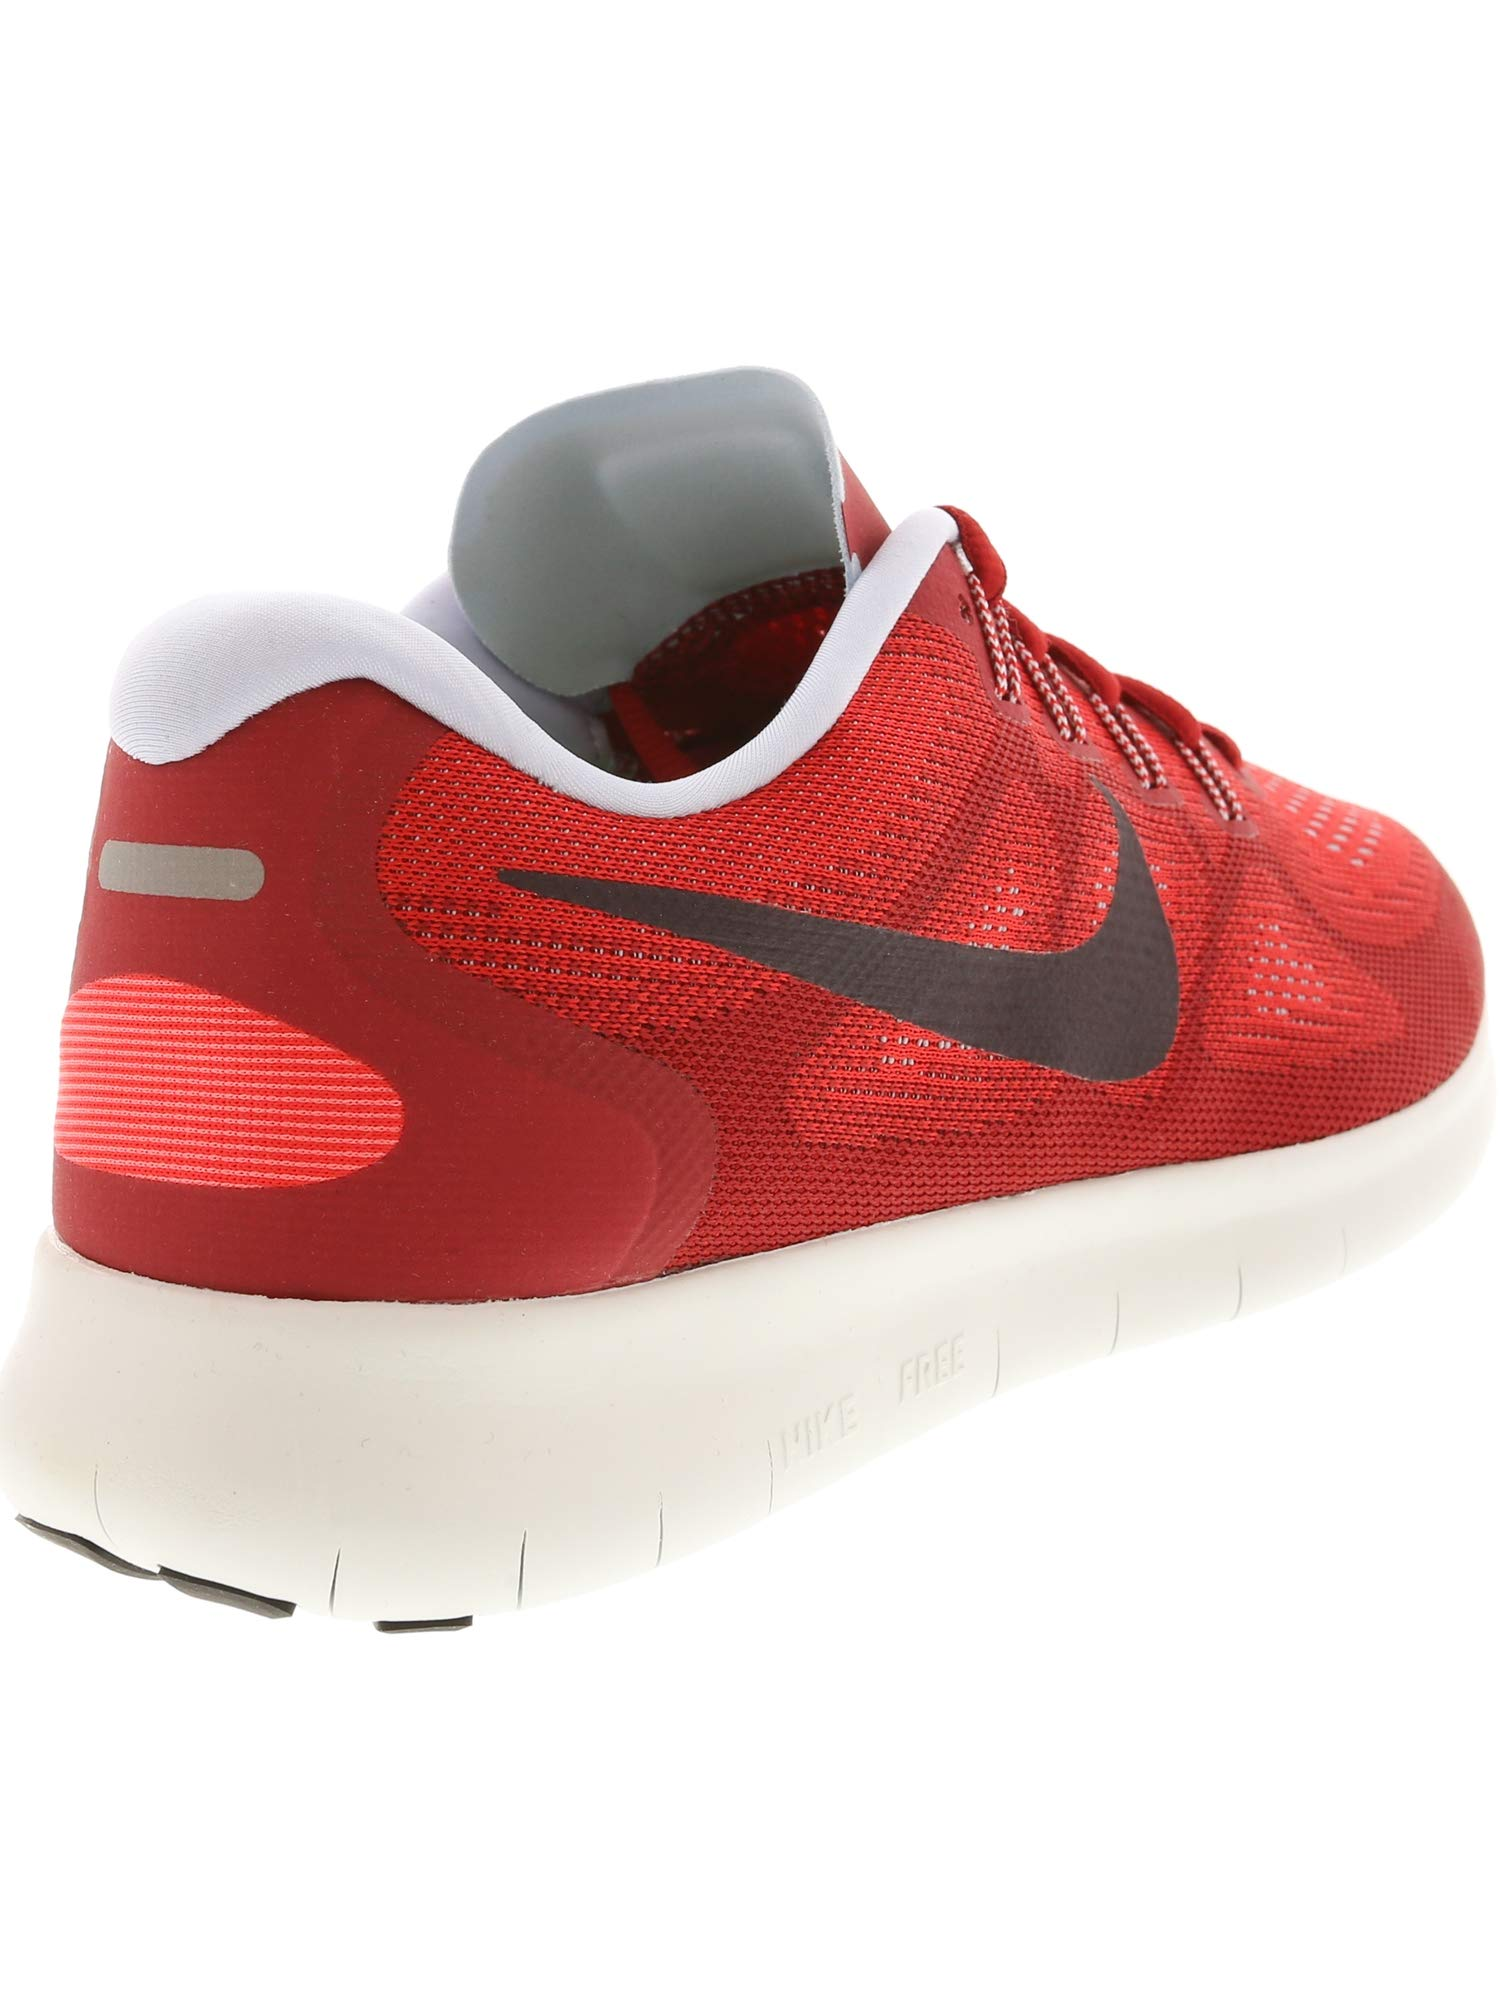 Nike Free RN 2017 Mens Running Trainers 880839 Sneakers Shoes (UK 7 US 8 EU 41, University red Port Wine 602) by Nike (Image #5)